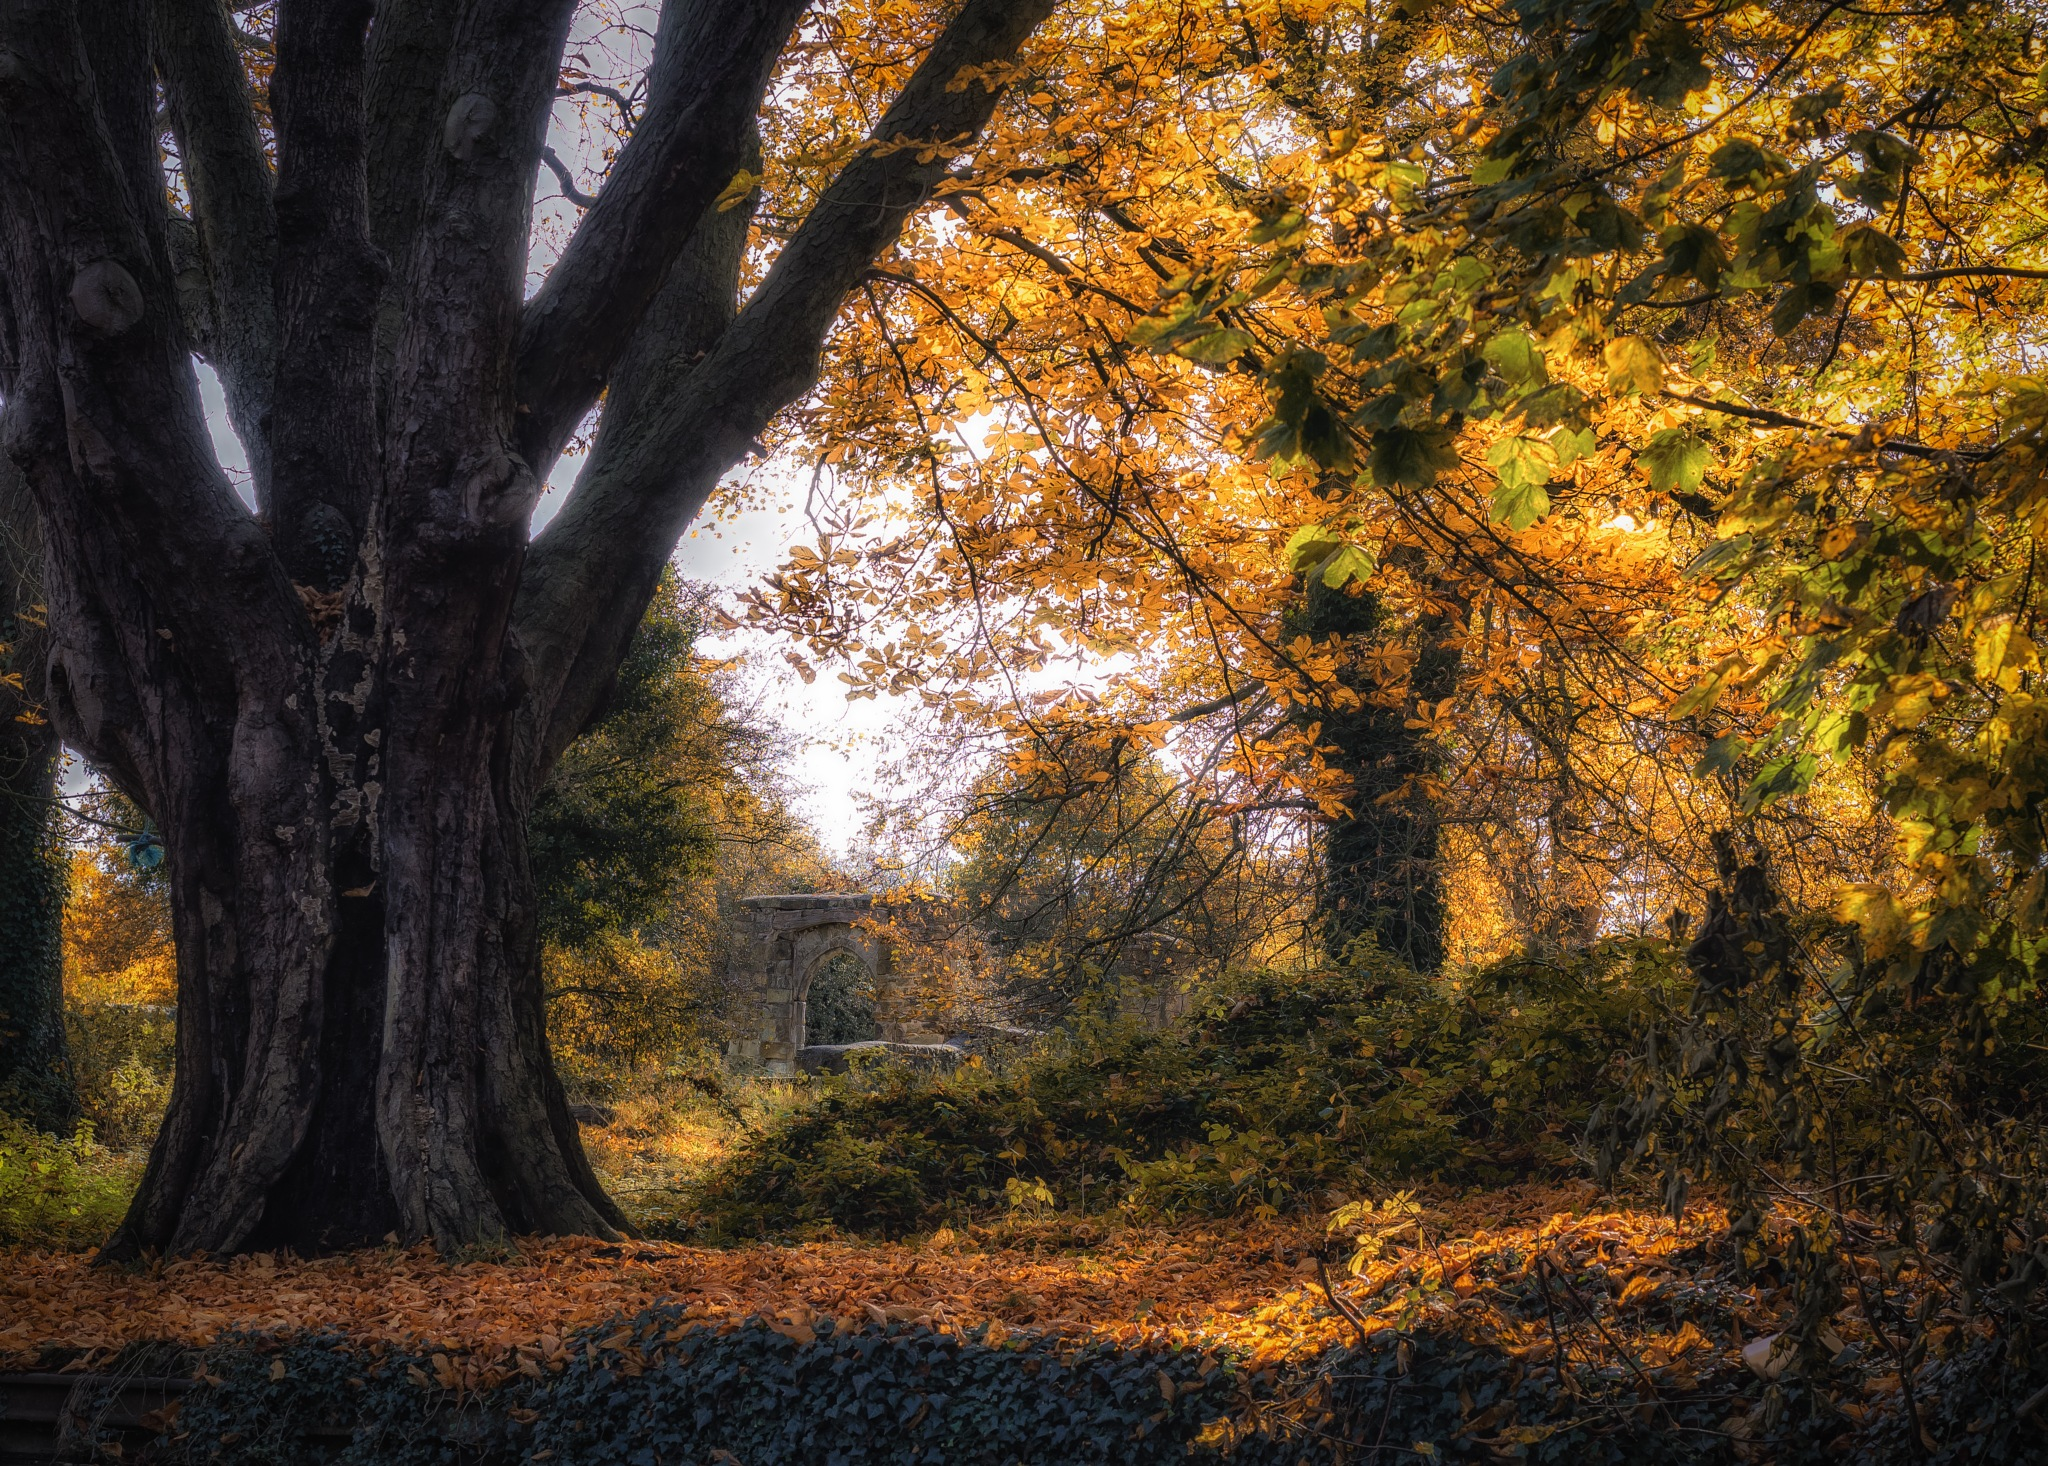 Autumn Priory by Sarah Walters